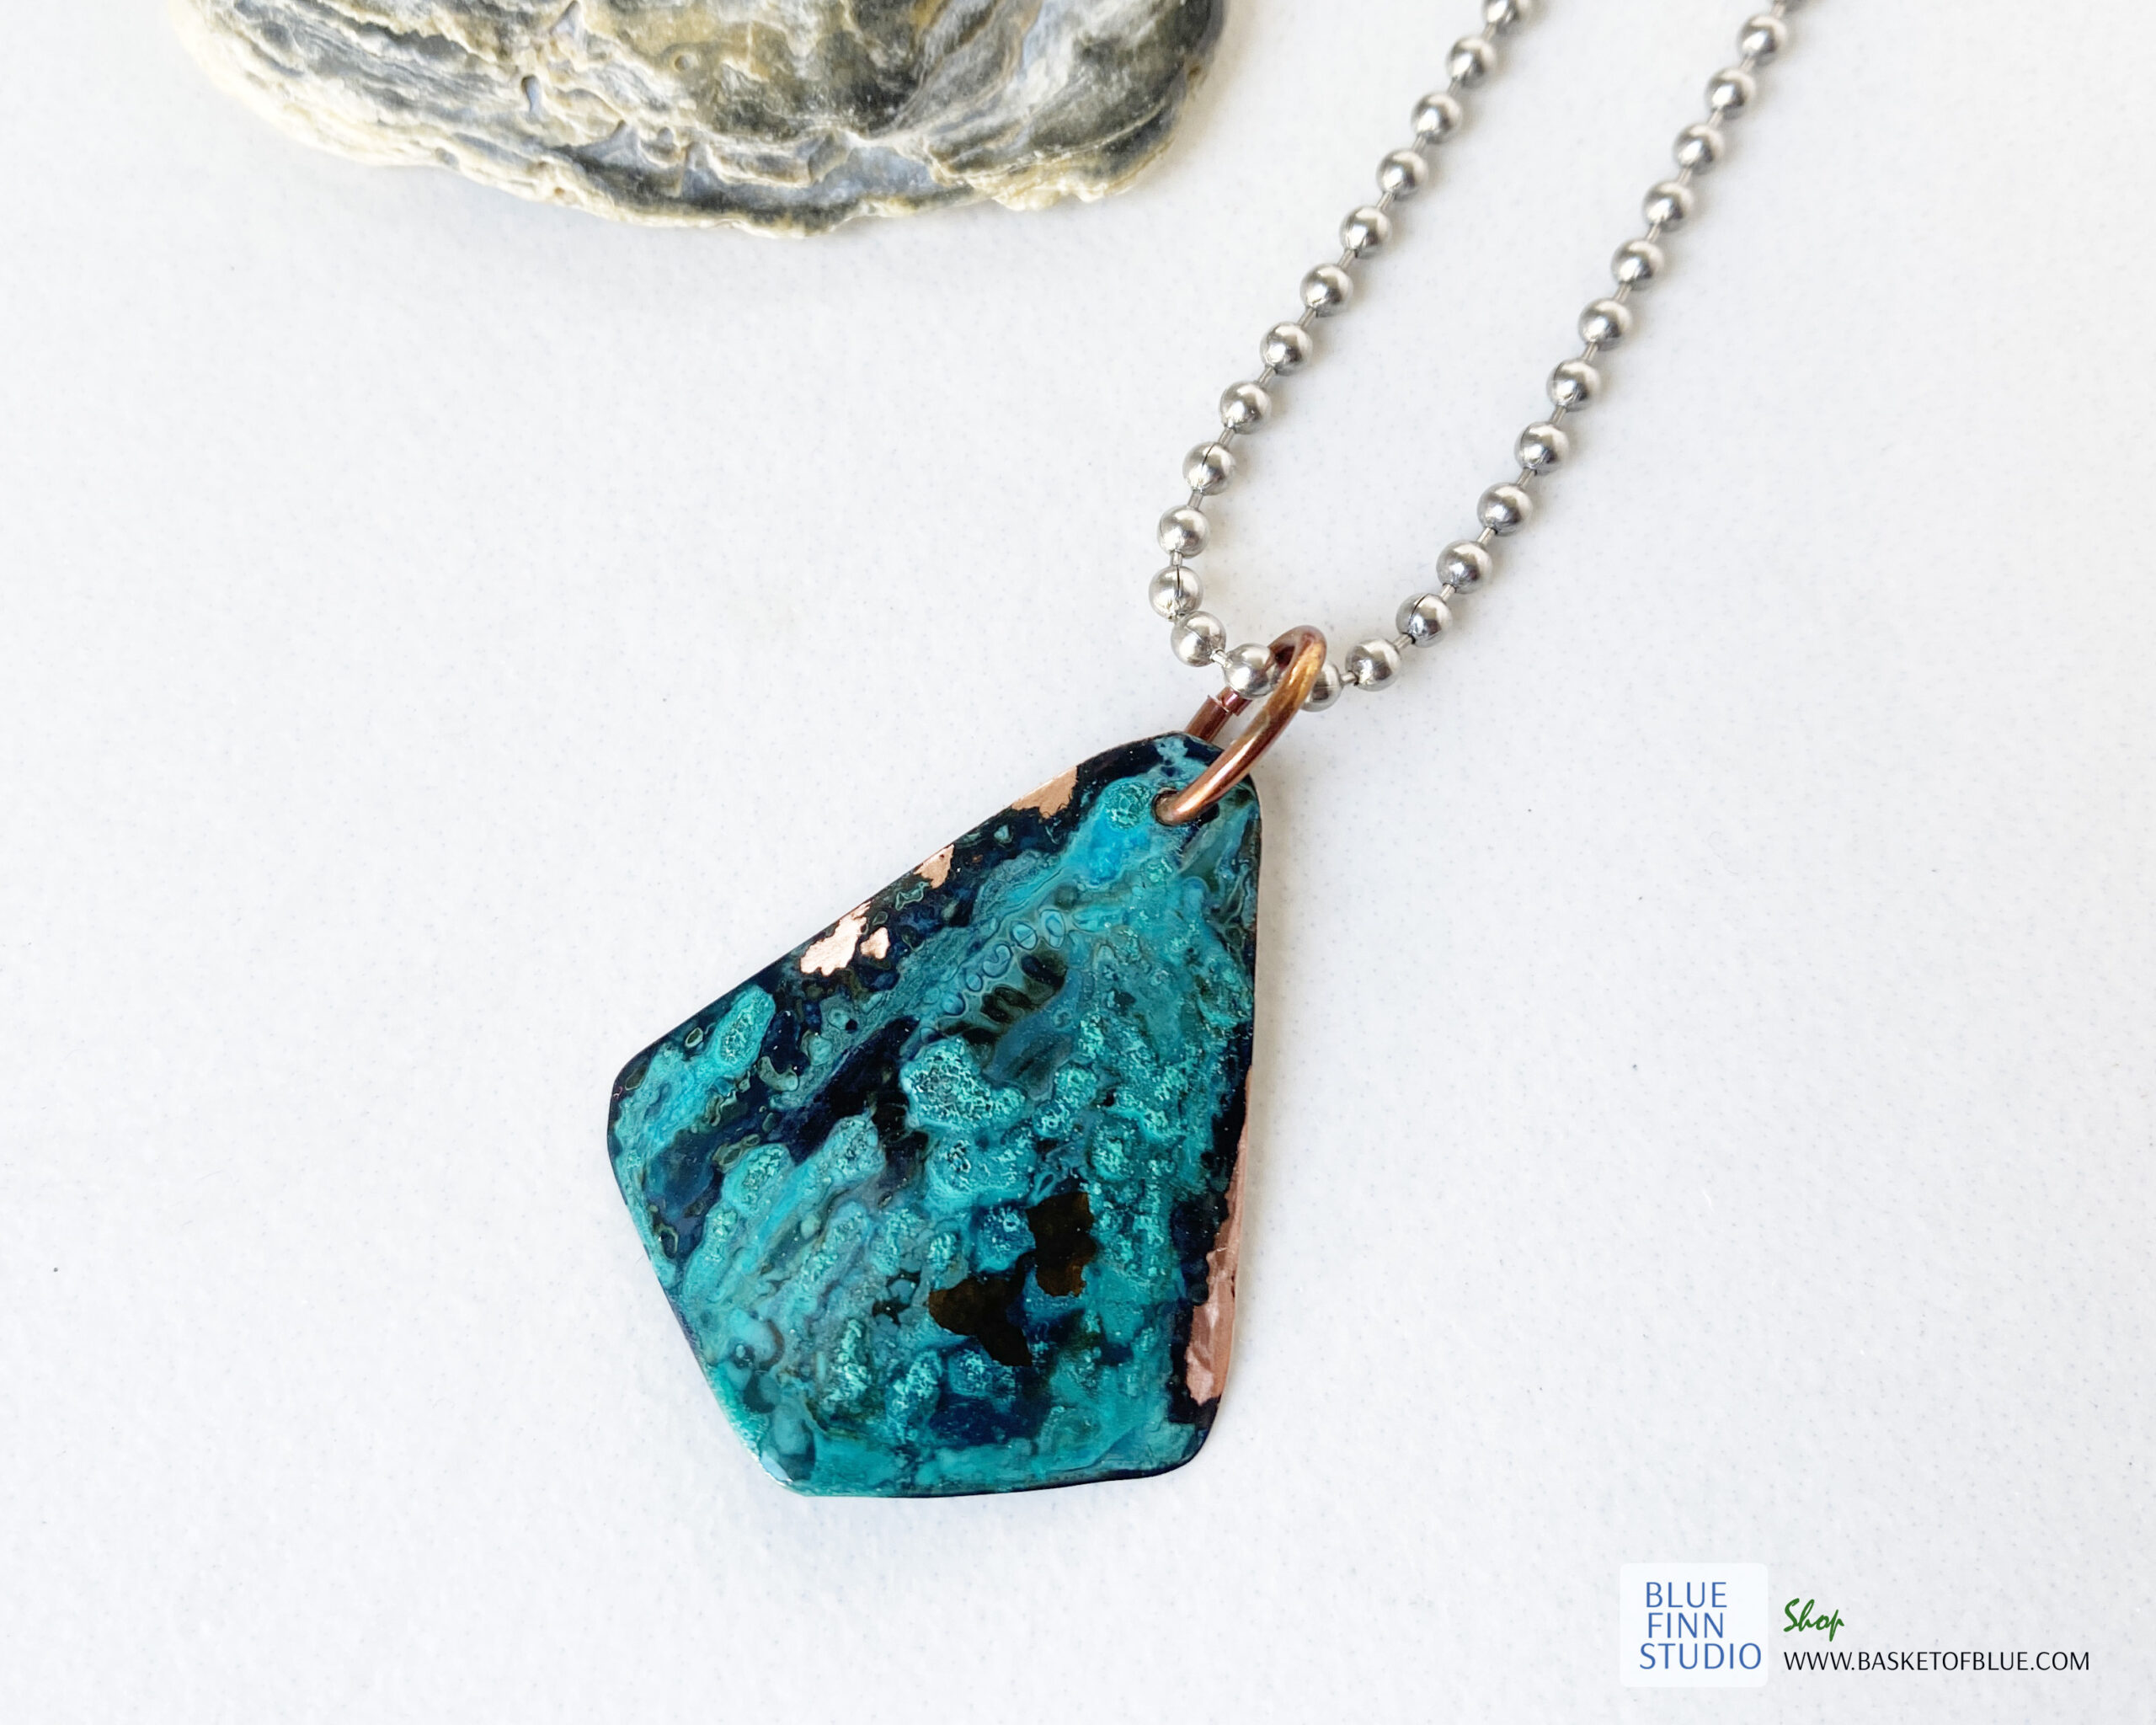 blue green verdigris patina necklace